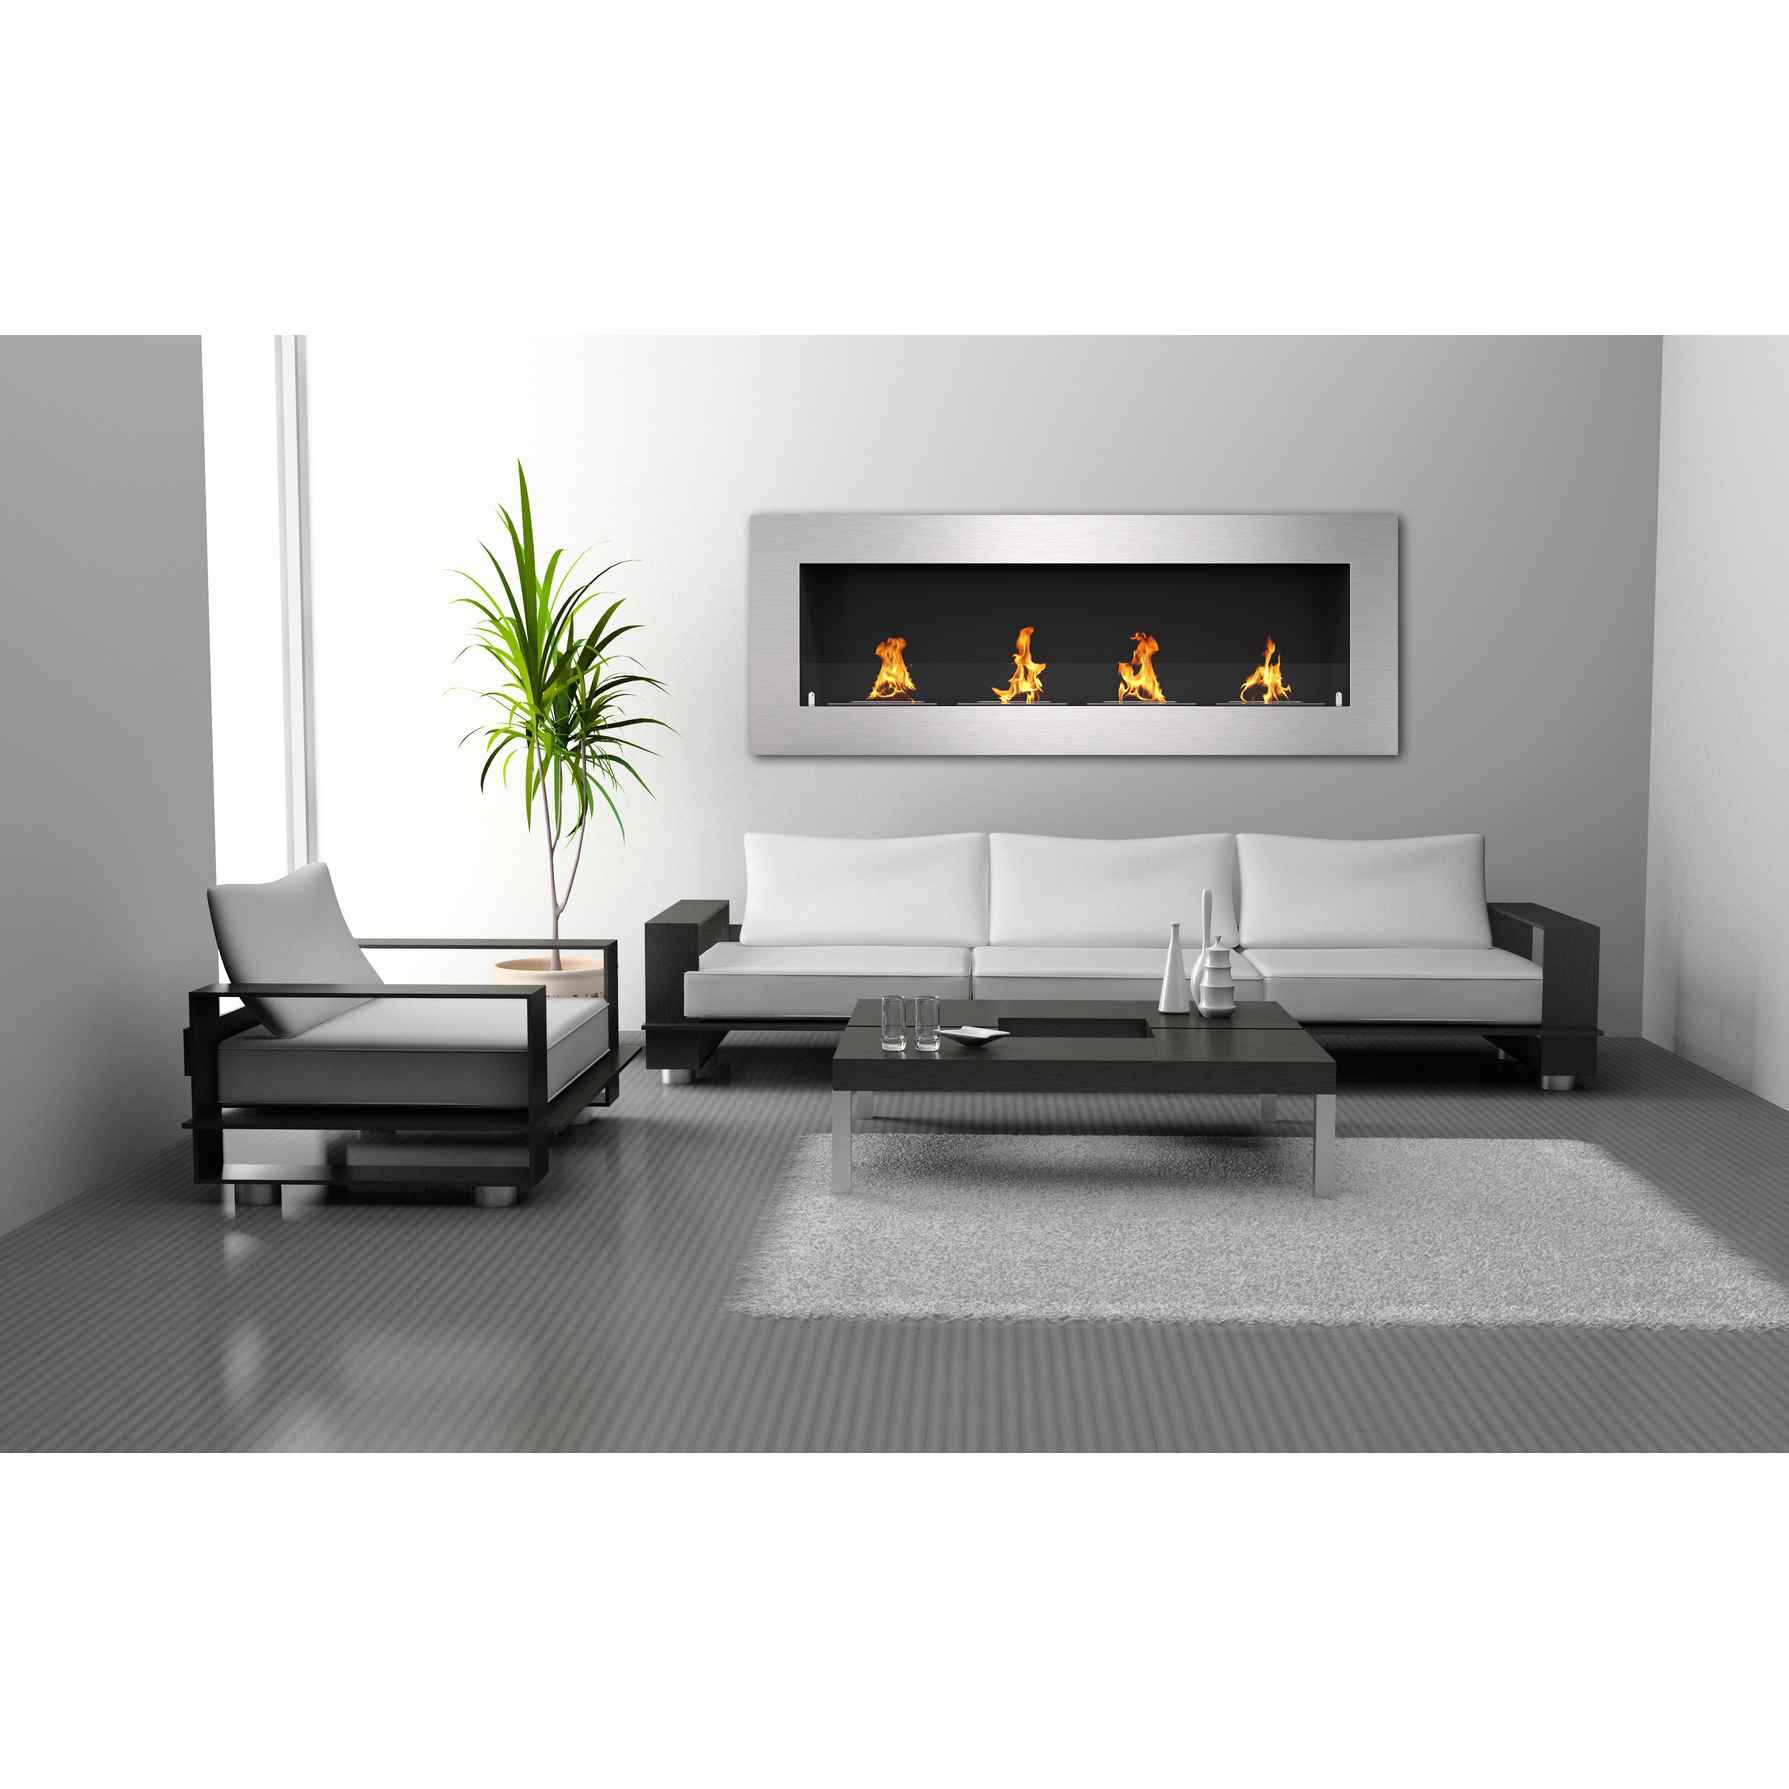 product view ethanol lareira cube bio kamin small fireplace chemine